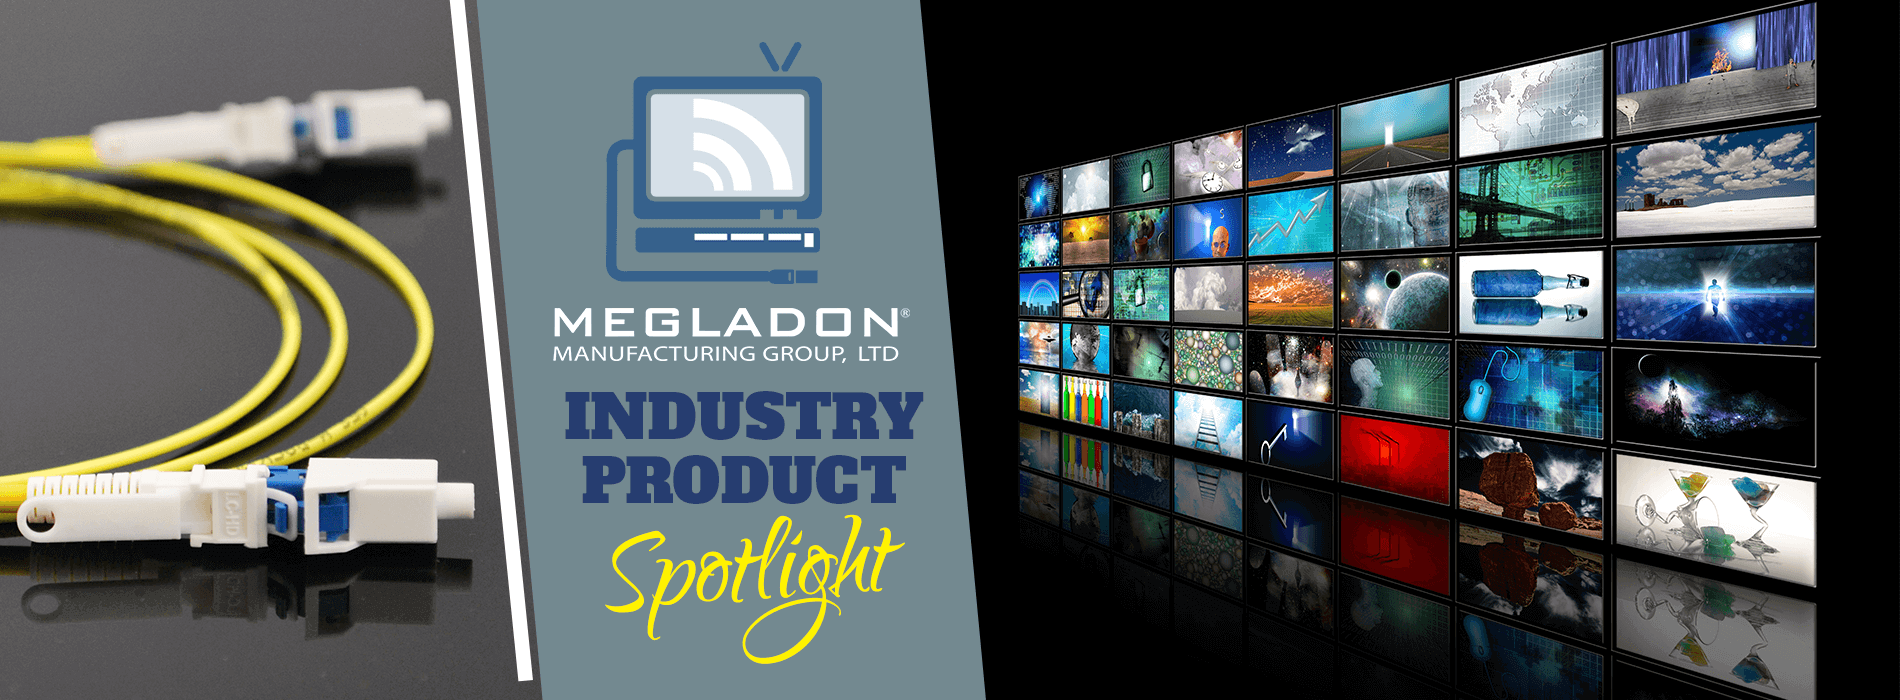 Industry Product Spotlight - Cable Television